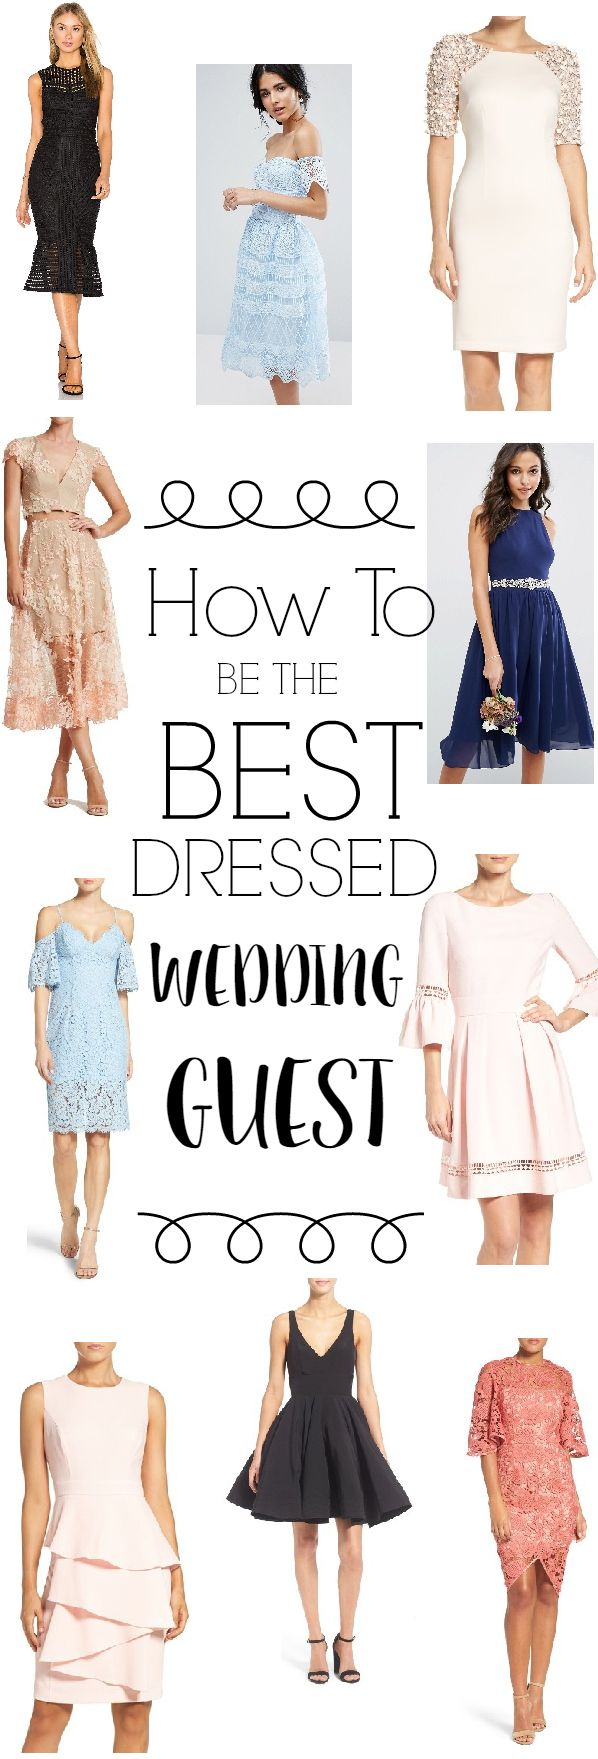 Best Dressed Wedding Guest Tips Dous And Donuts of Dressing for a